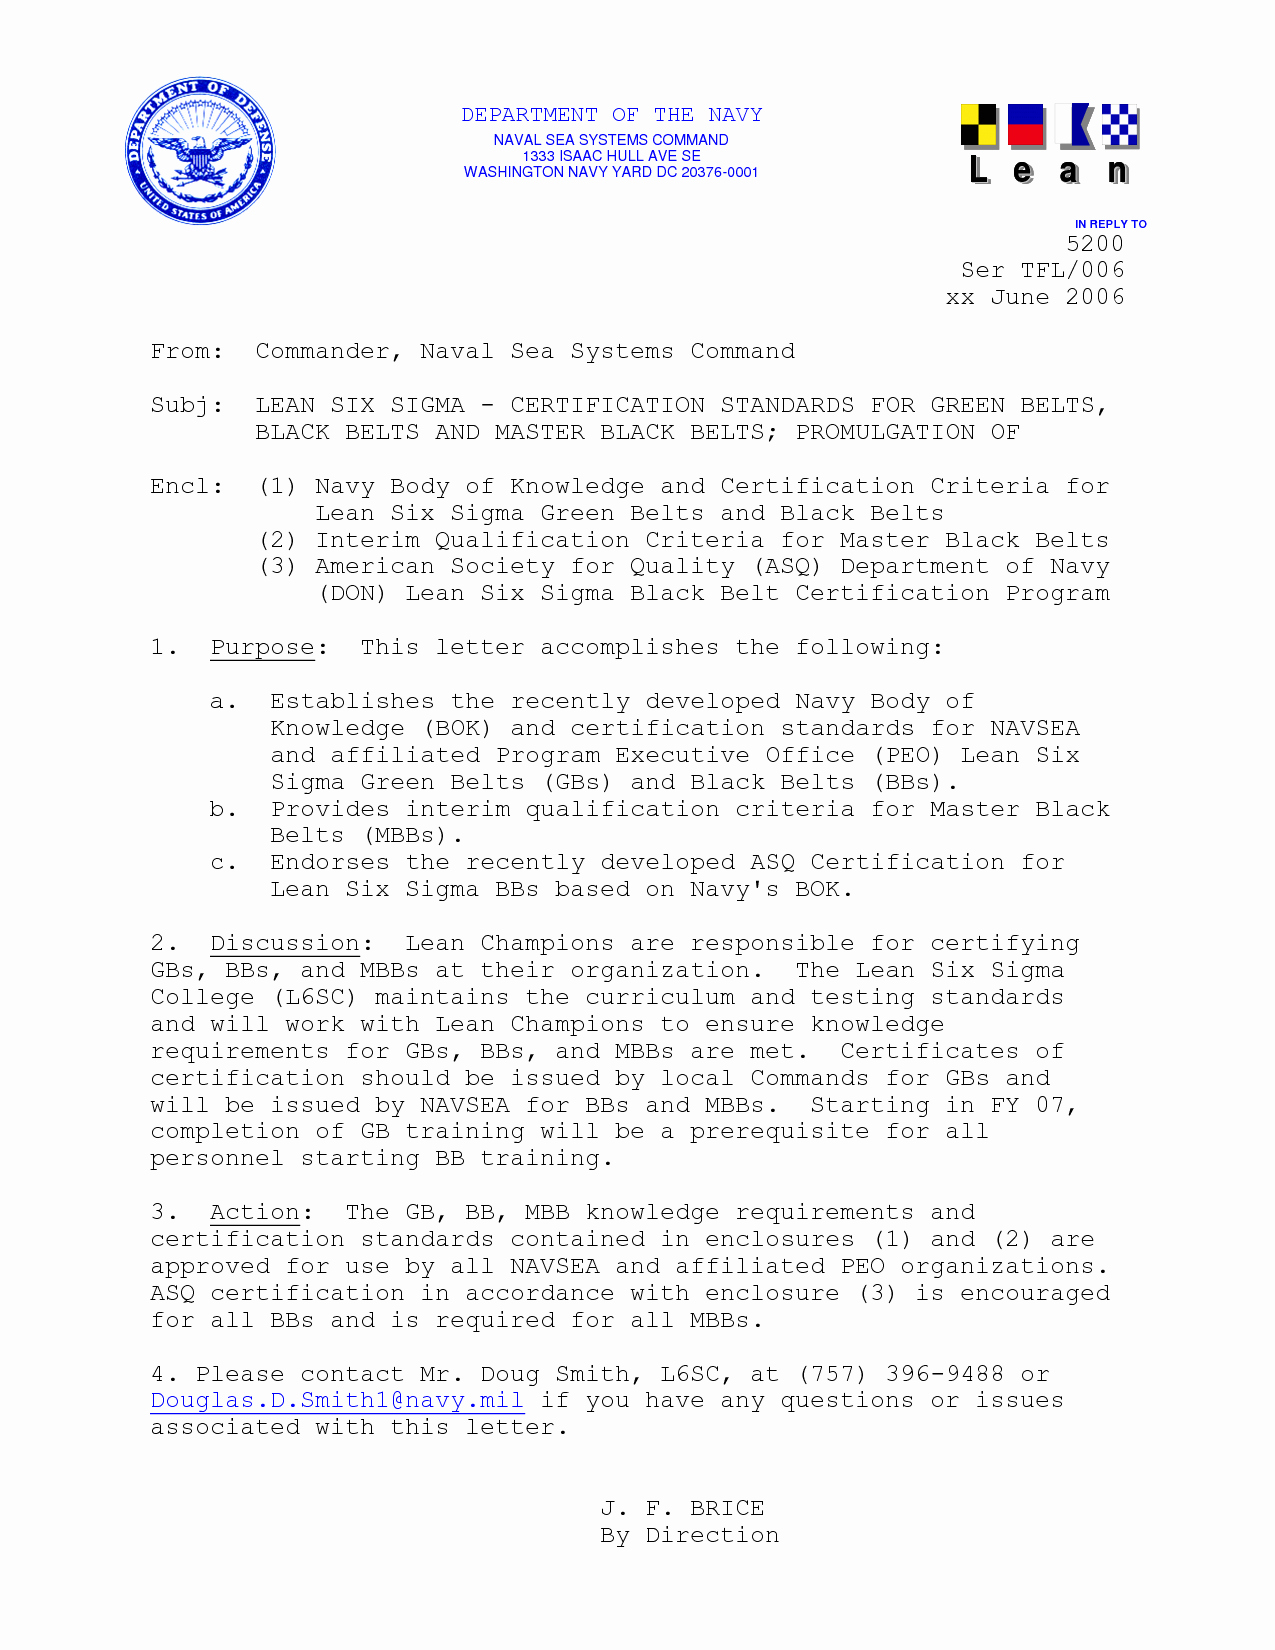 Naval Letter Of Recommendation Fresh Letter Of Re Mendation for Naval Academy Example Hospi